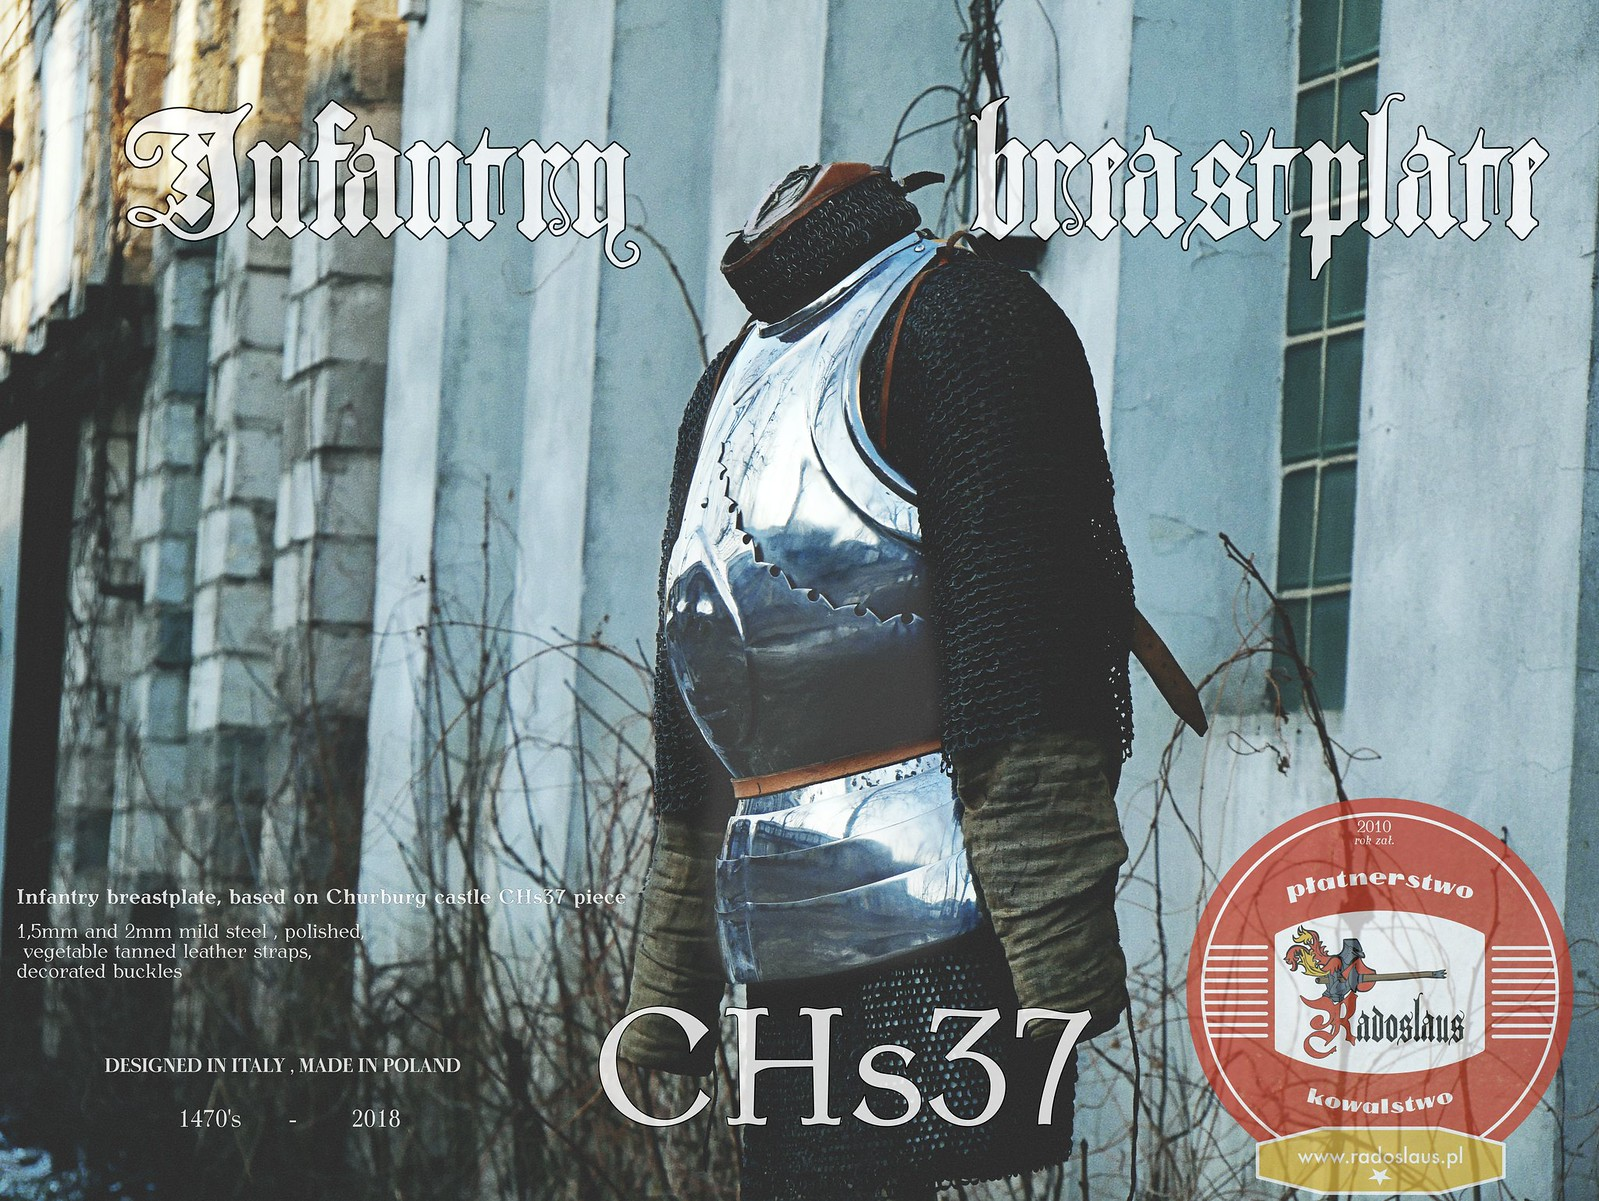 Infantry 1470's breastplate Chs37